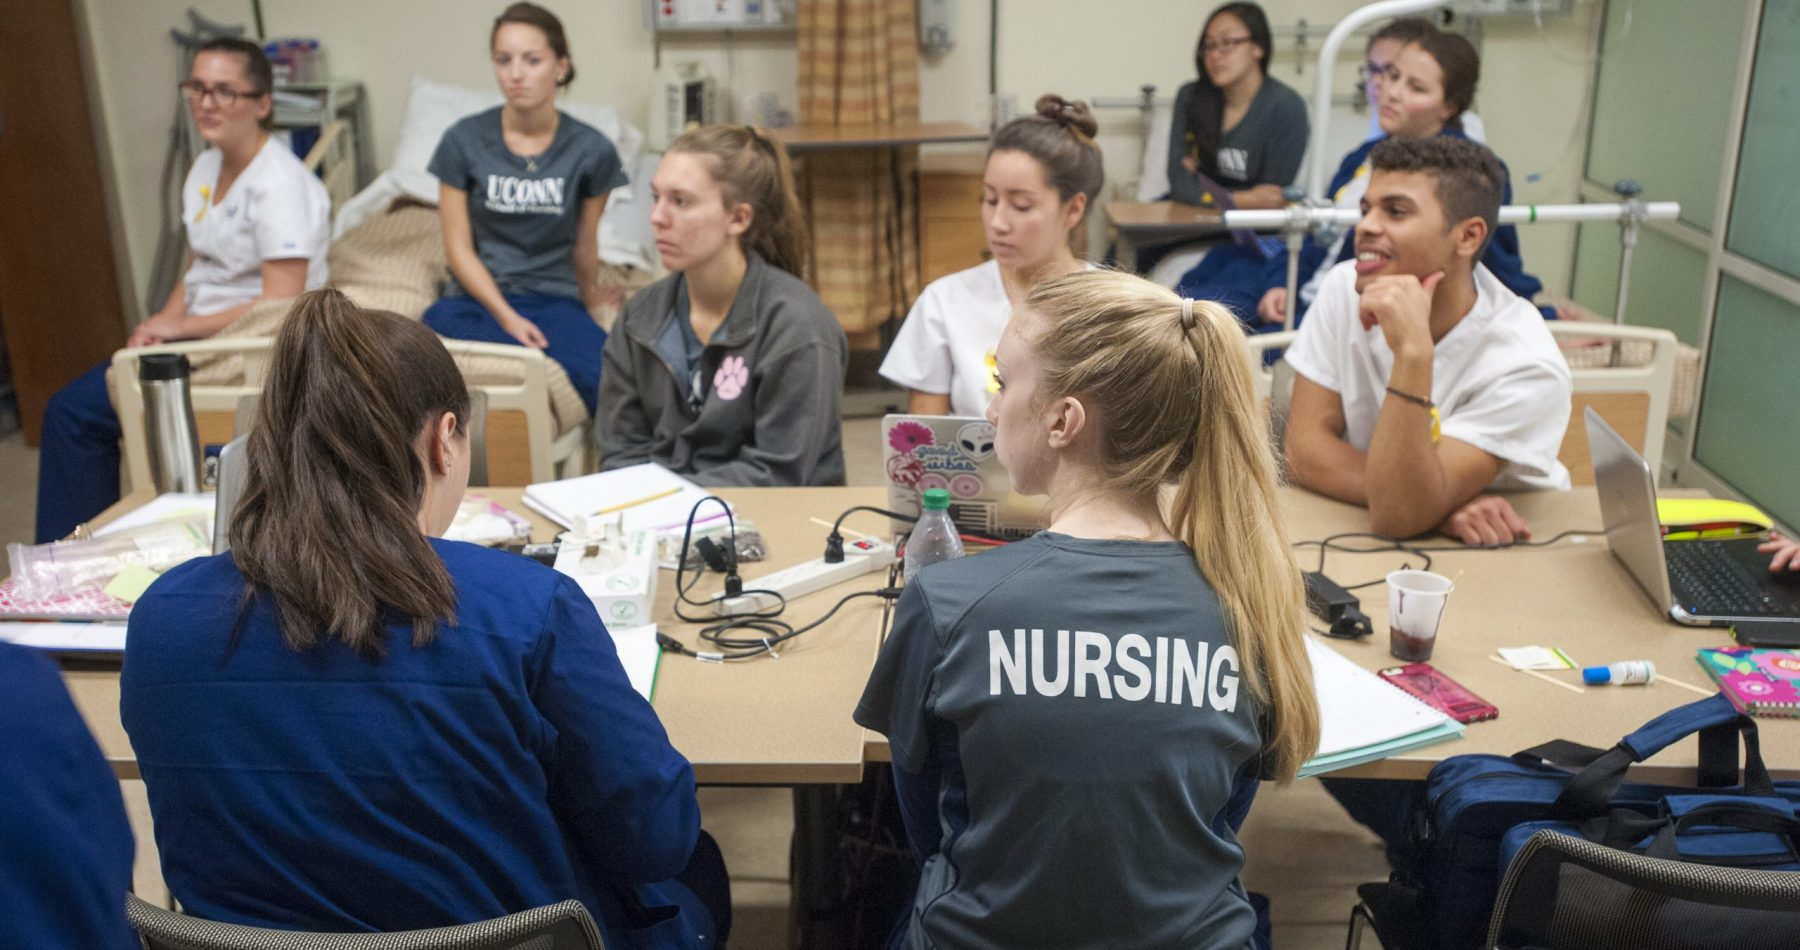 Nursing students attend class in the Clinical Learning Simulation Center.